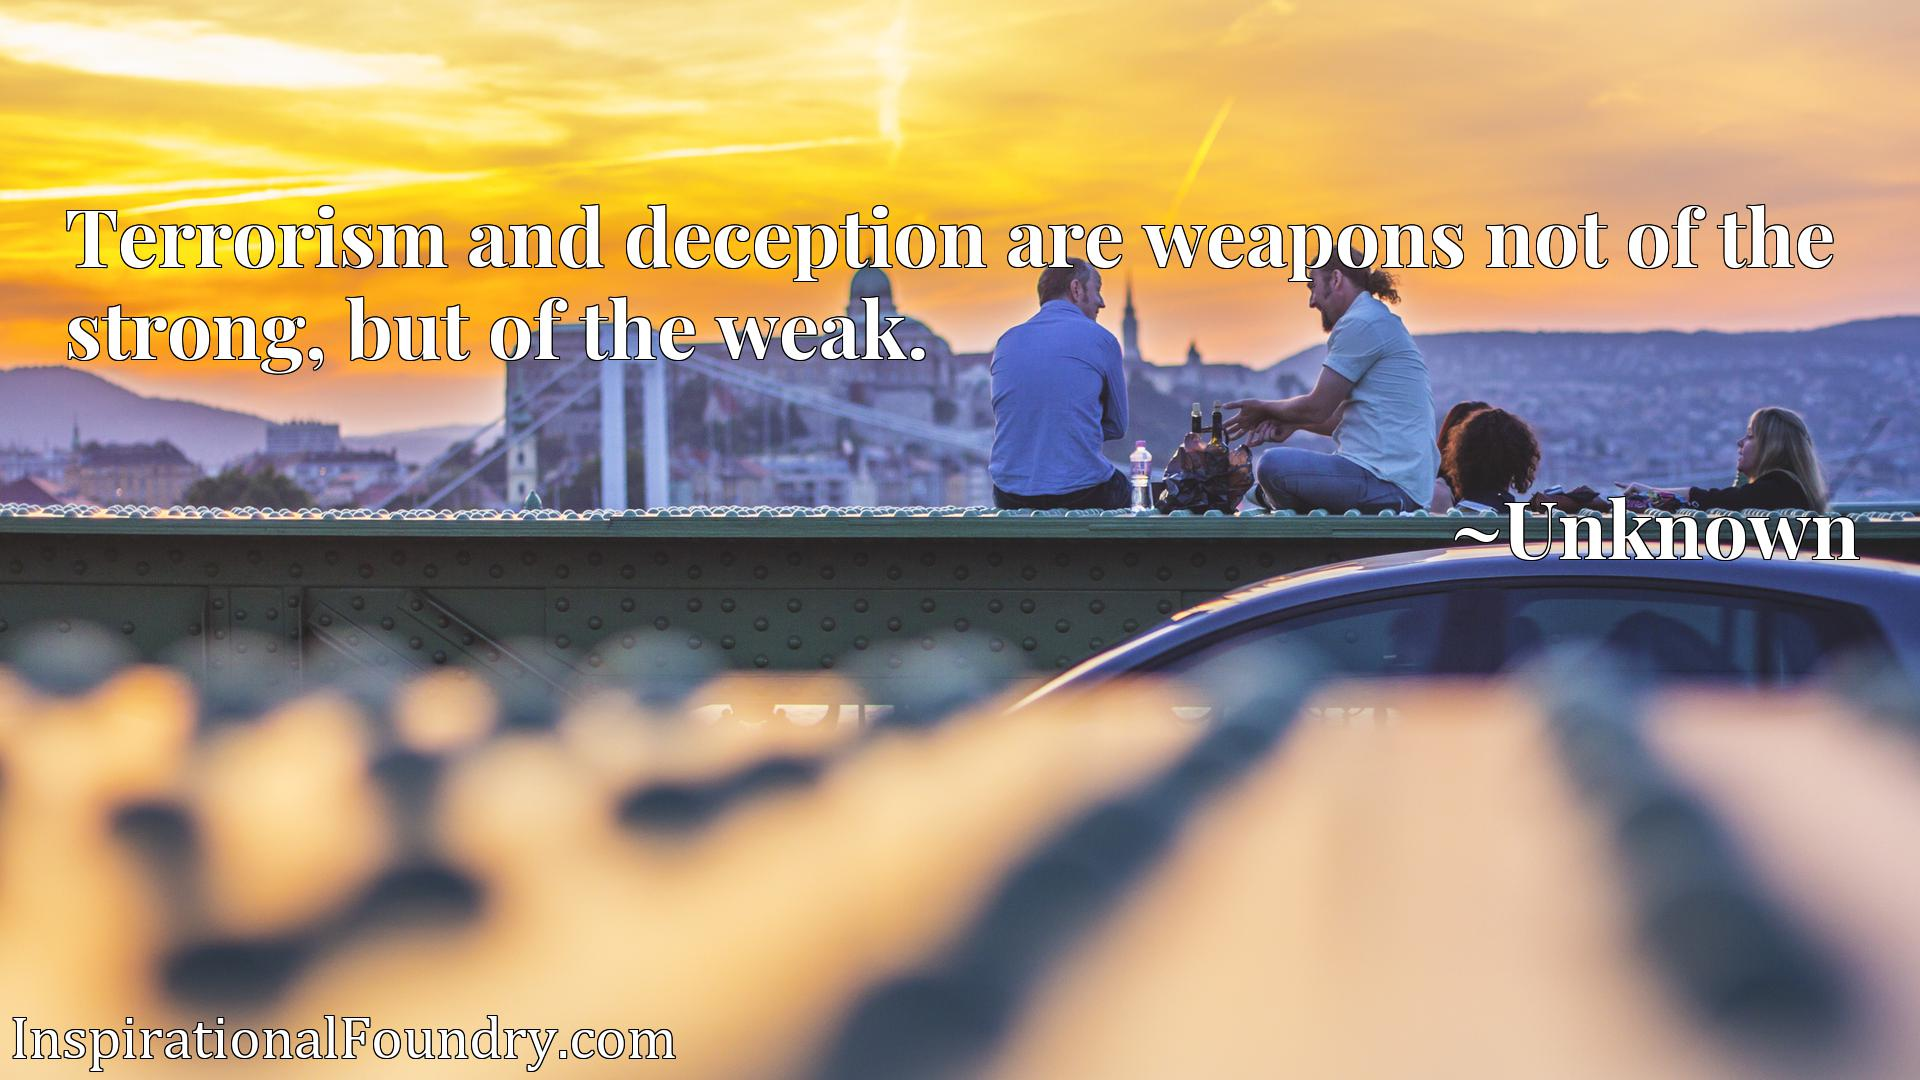 Terrorism and deception are weapons not of the strong, but of the weak.